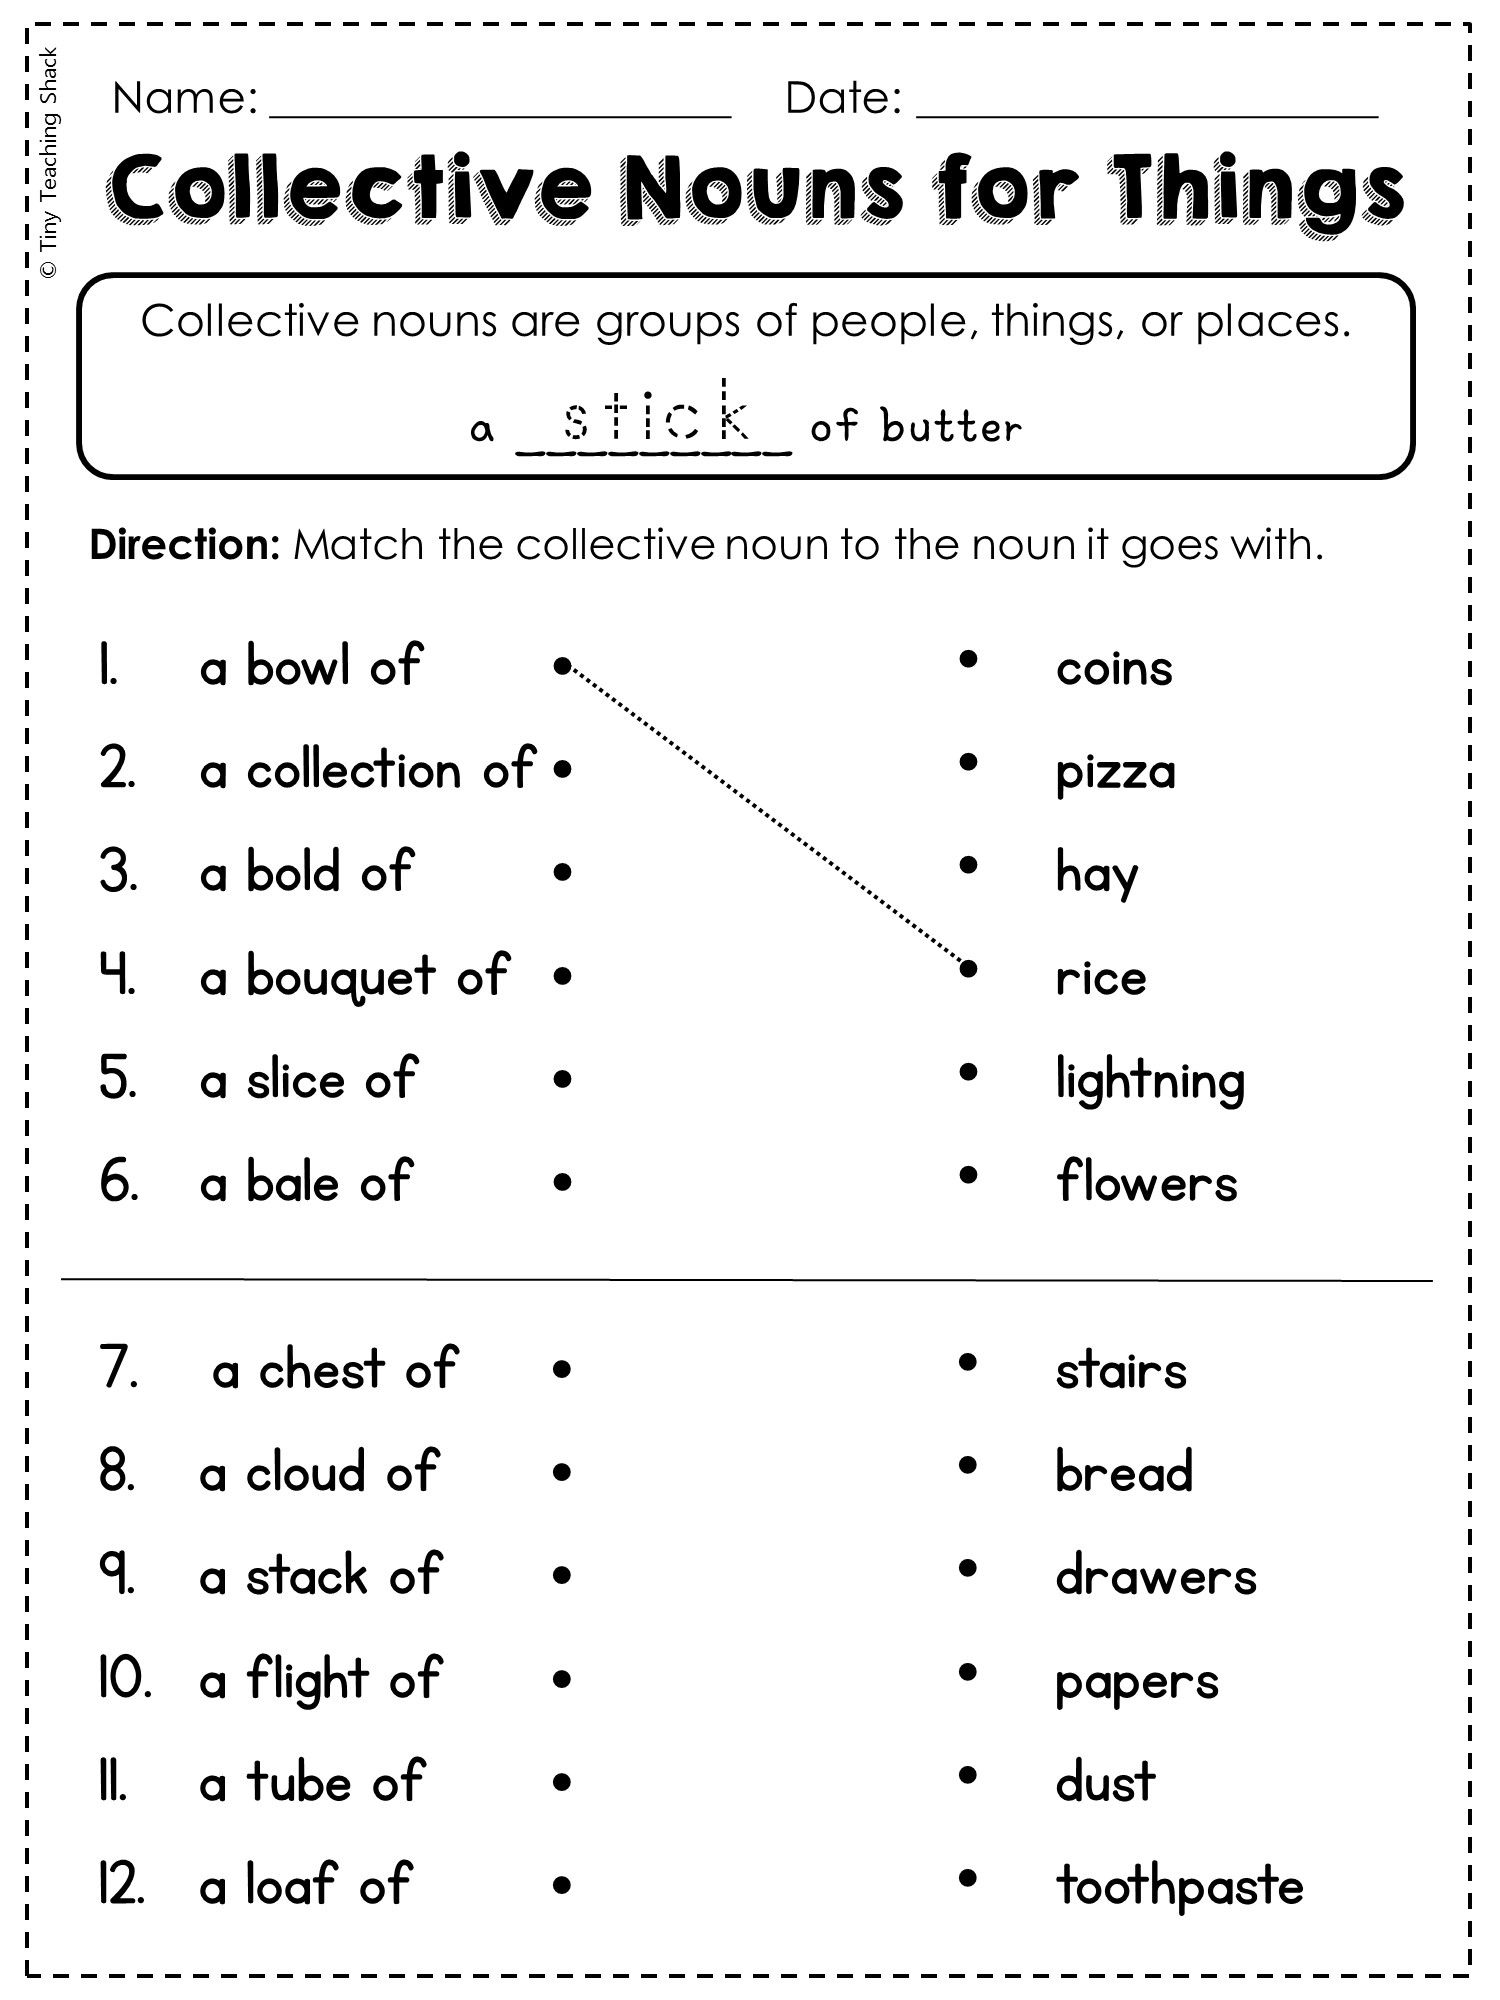 free collective noun worksheets   Collective nouns worksheet [ 2000 x 1500 Pixel ]